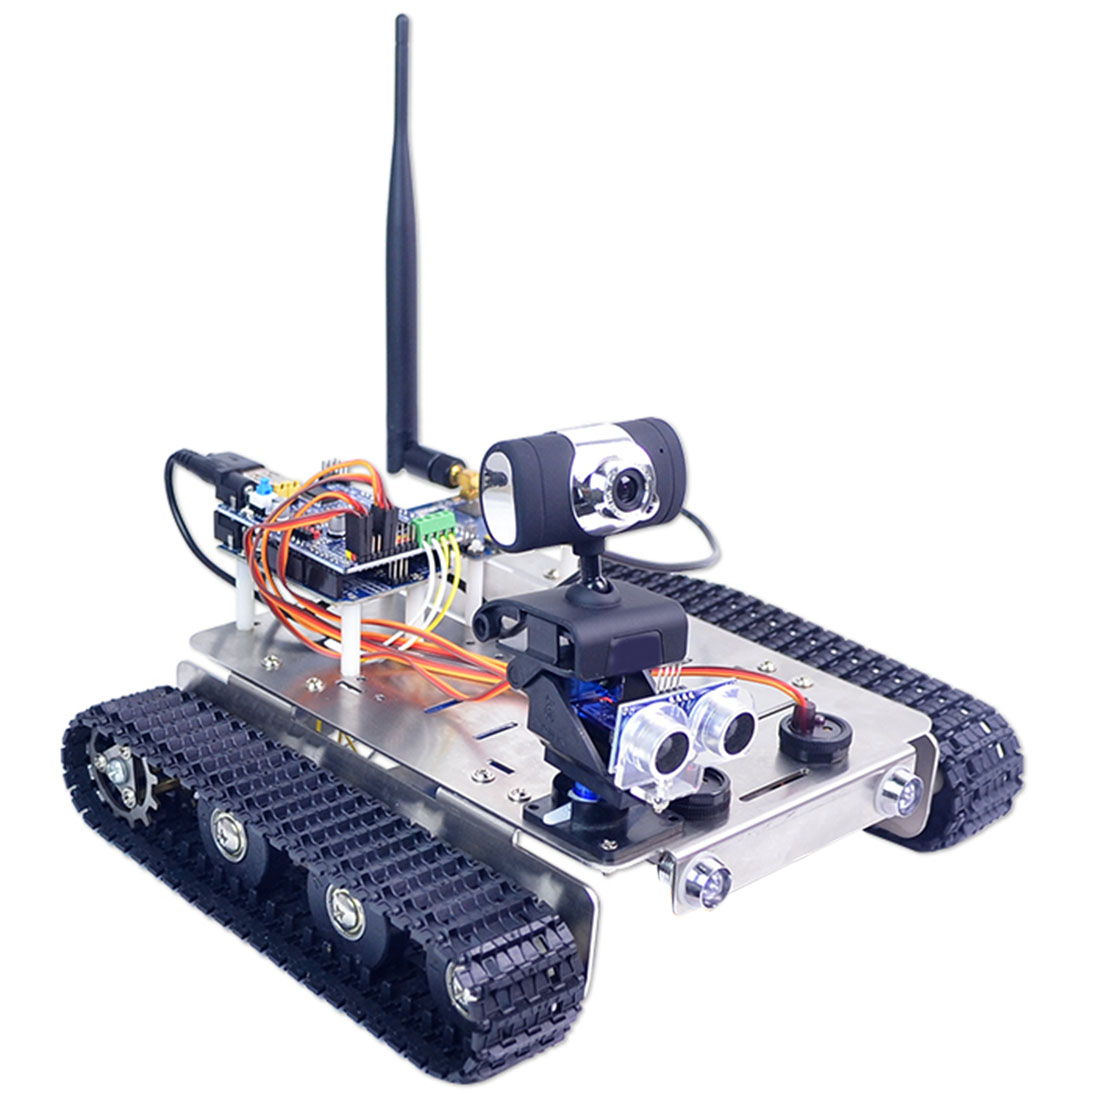 DIY Robot Car Chassis Intelligent Vehicle Aluminum Alloy Track Body For Arduino UNO R3(Line Patrol Obstacle Avoidance Version)